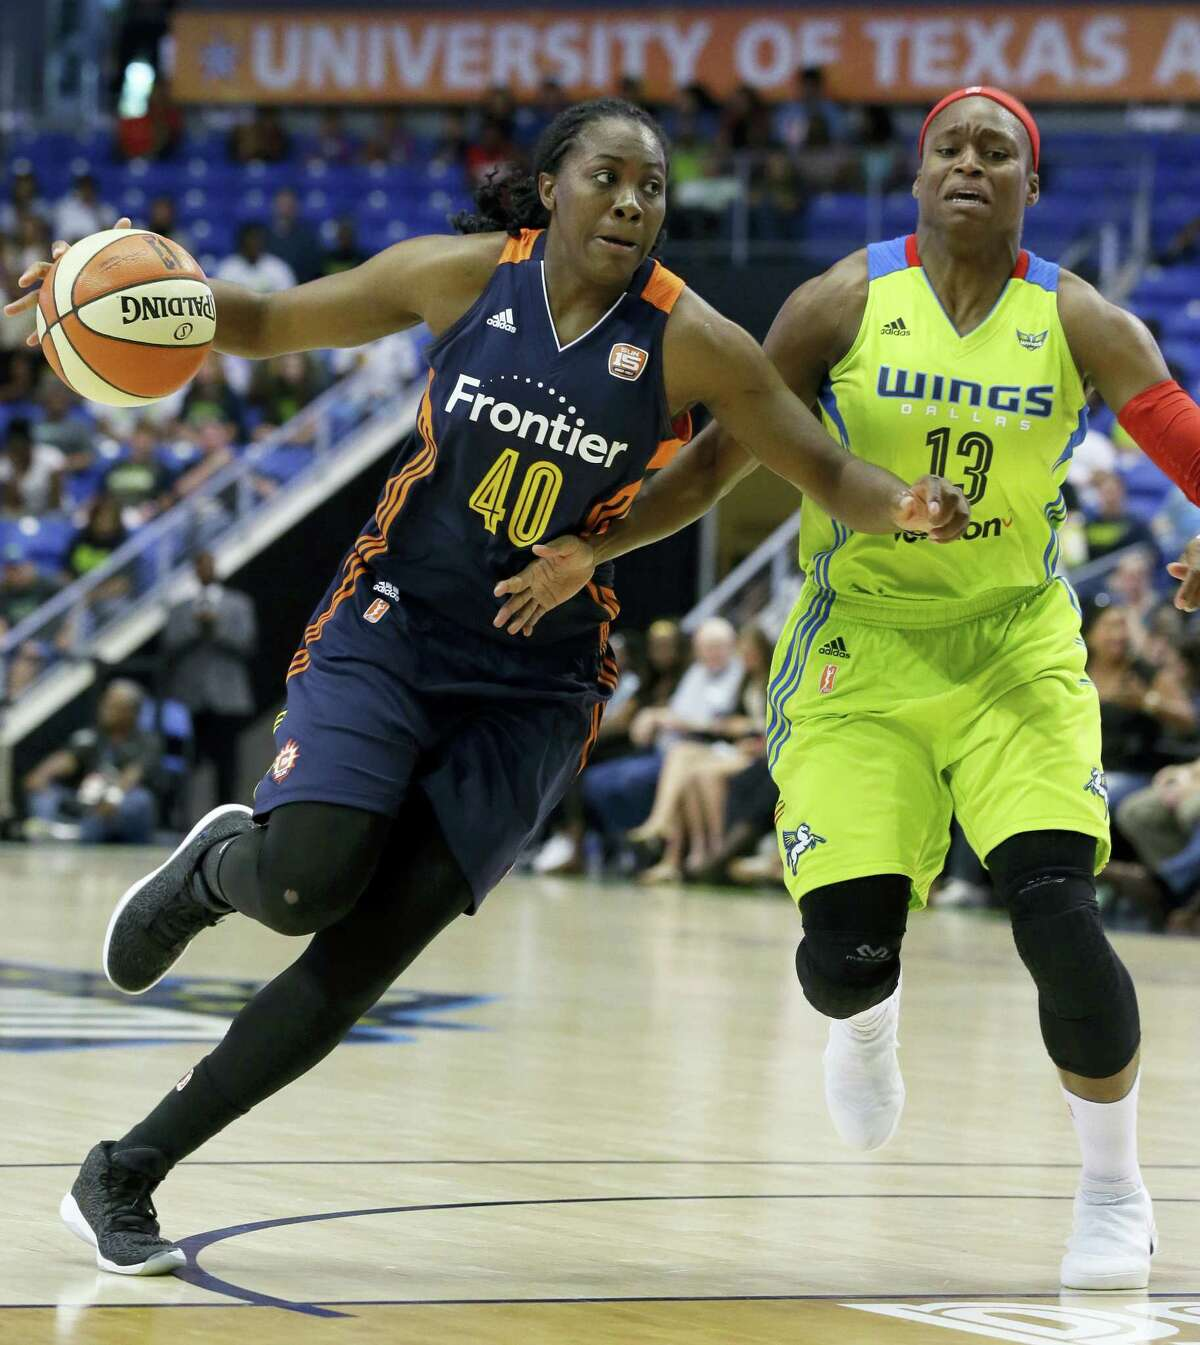 Connecticut Sun guard Shekinna Stricklen (40) drives against Dallas Wings guard Karima Christmas-Kelly (13) during the second half of a WNBA basketball game in Arlington, Texas on June 25, 2017.